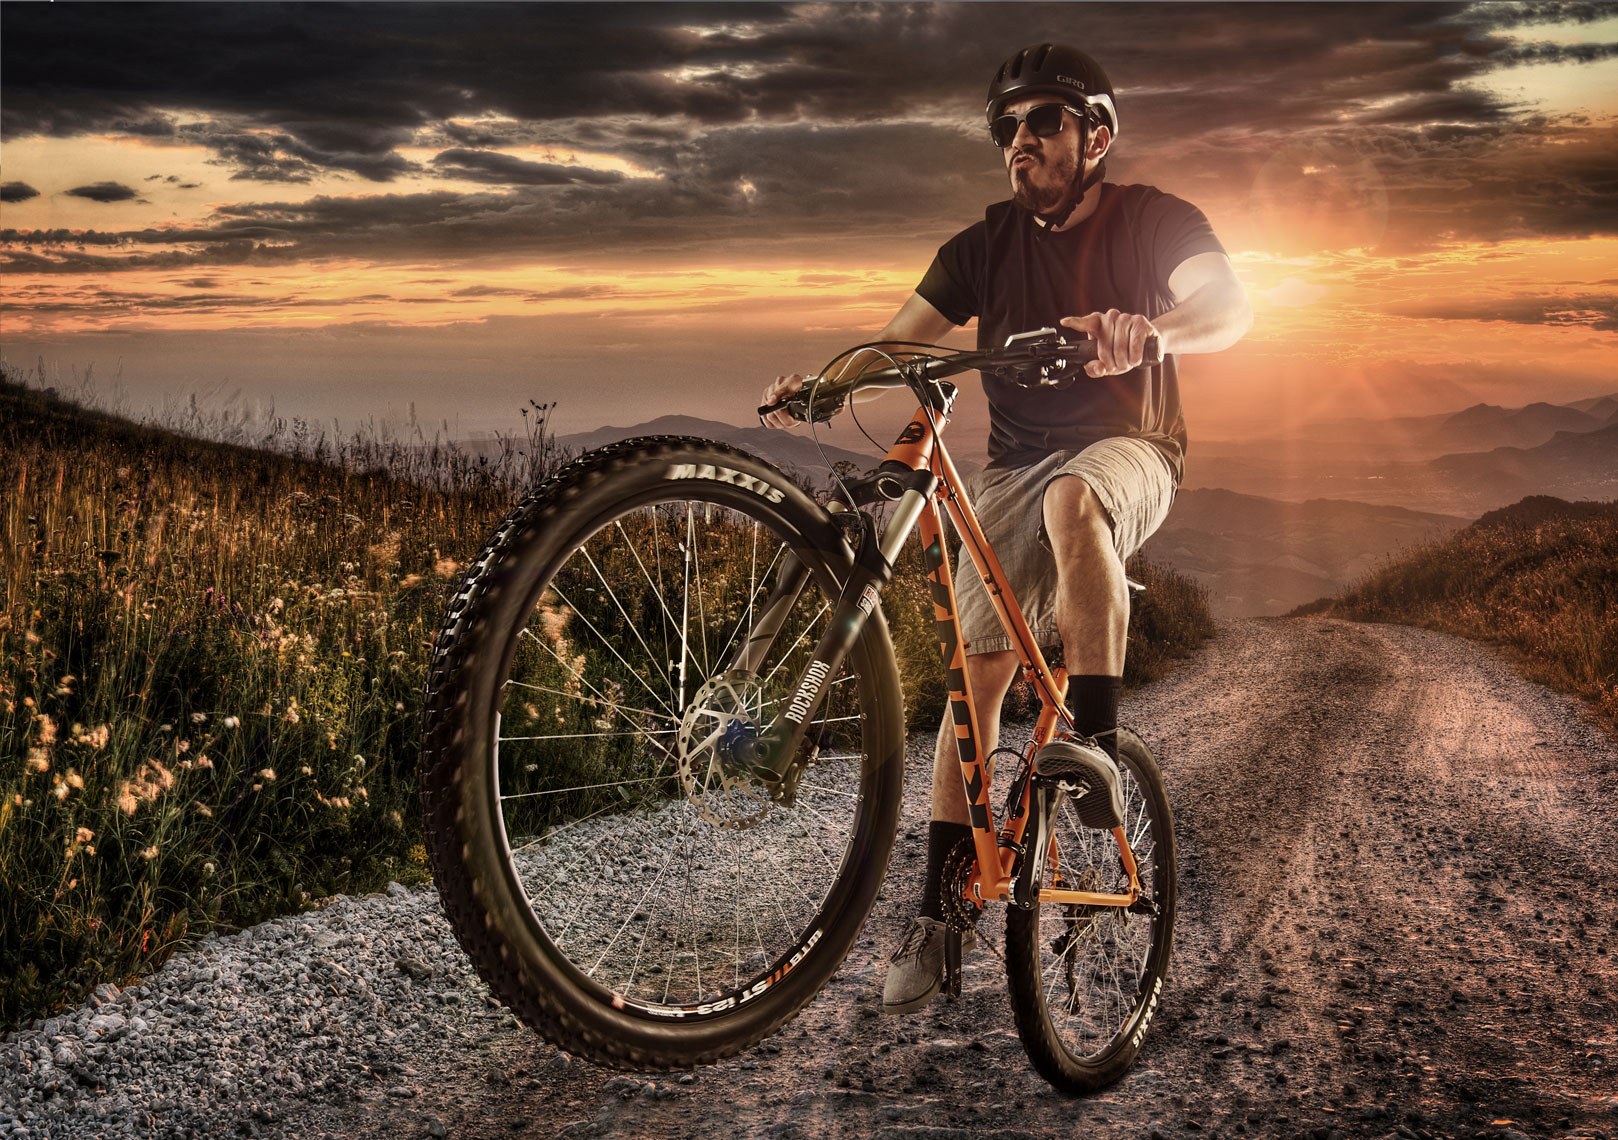 Mountain bike wheelie/sunset/location photography